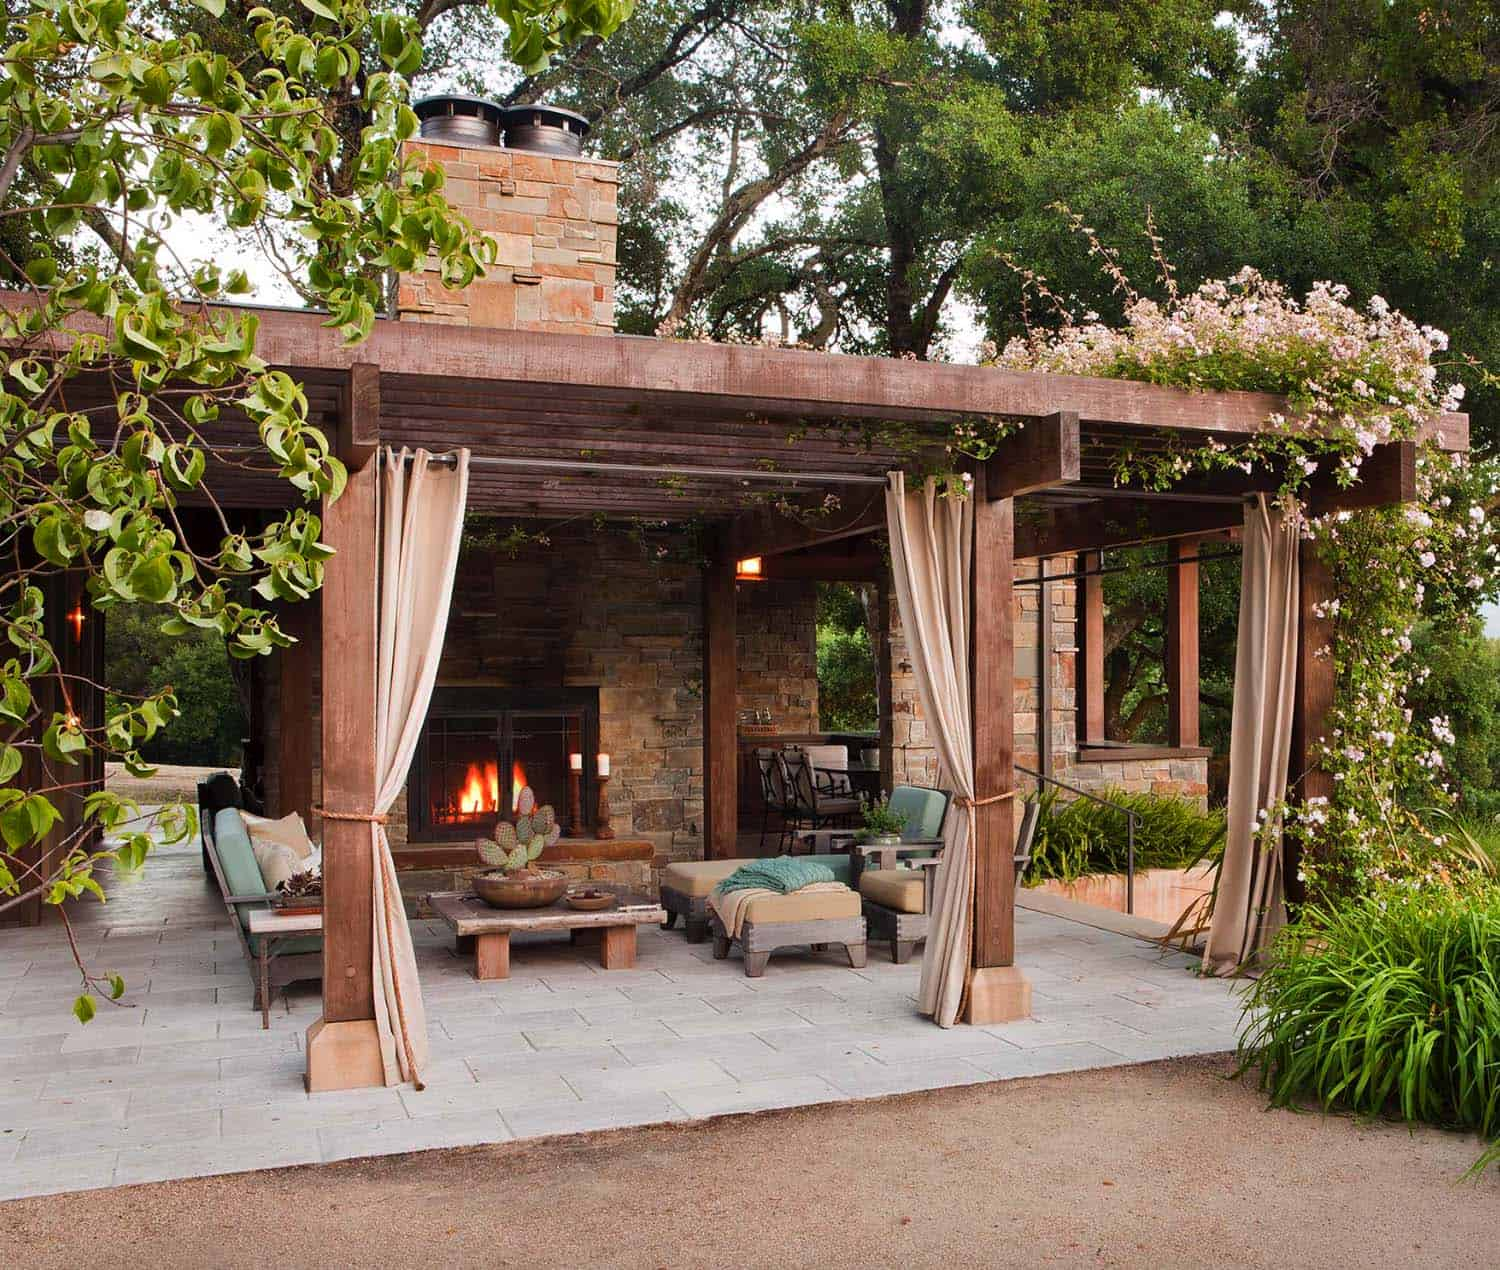 30+ Irresistible outdoor fireplace ideas that will leave ... on Outdoor Fireplaces Ideas  id=12437